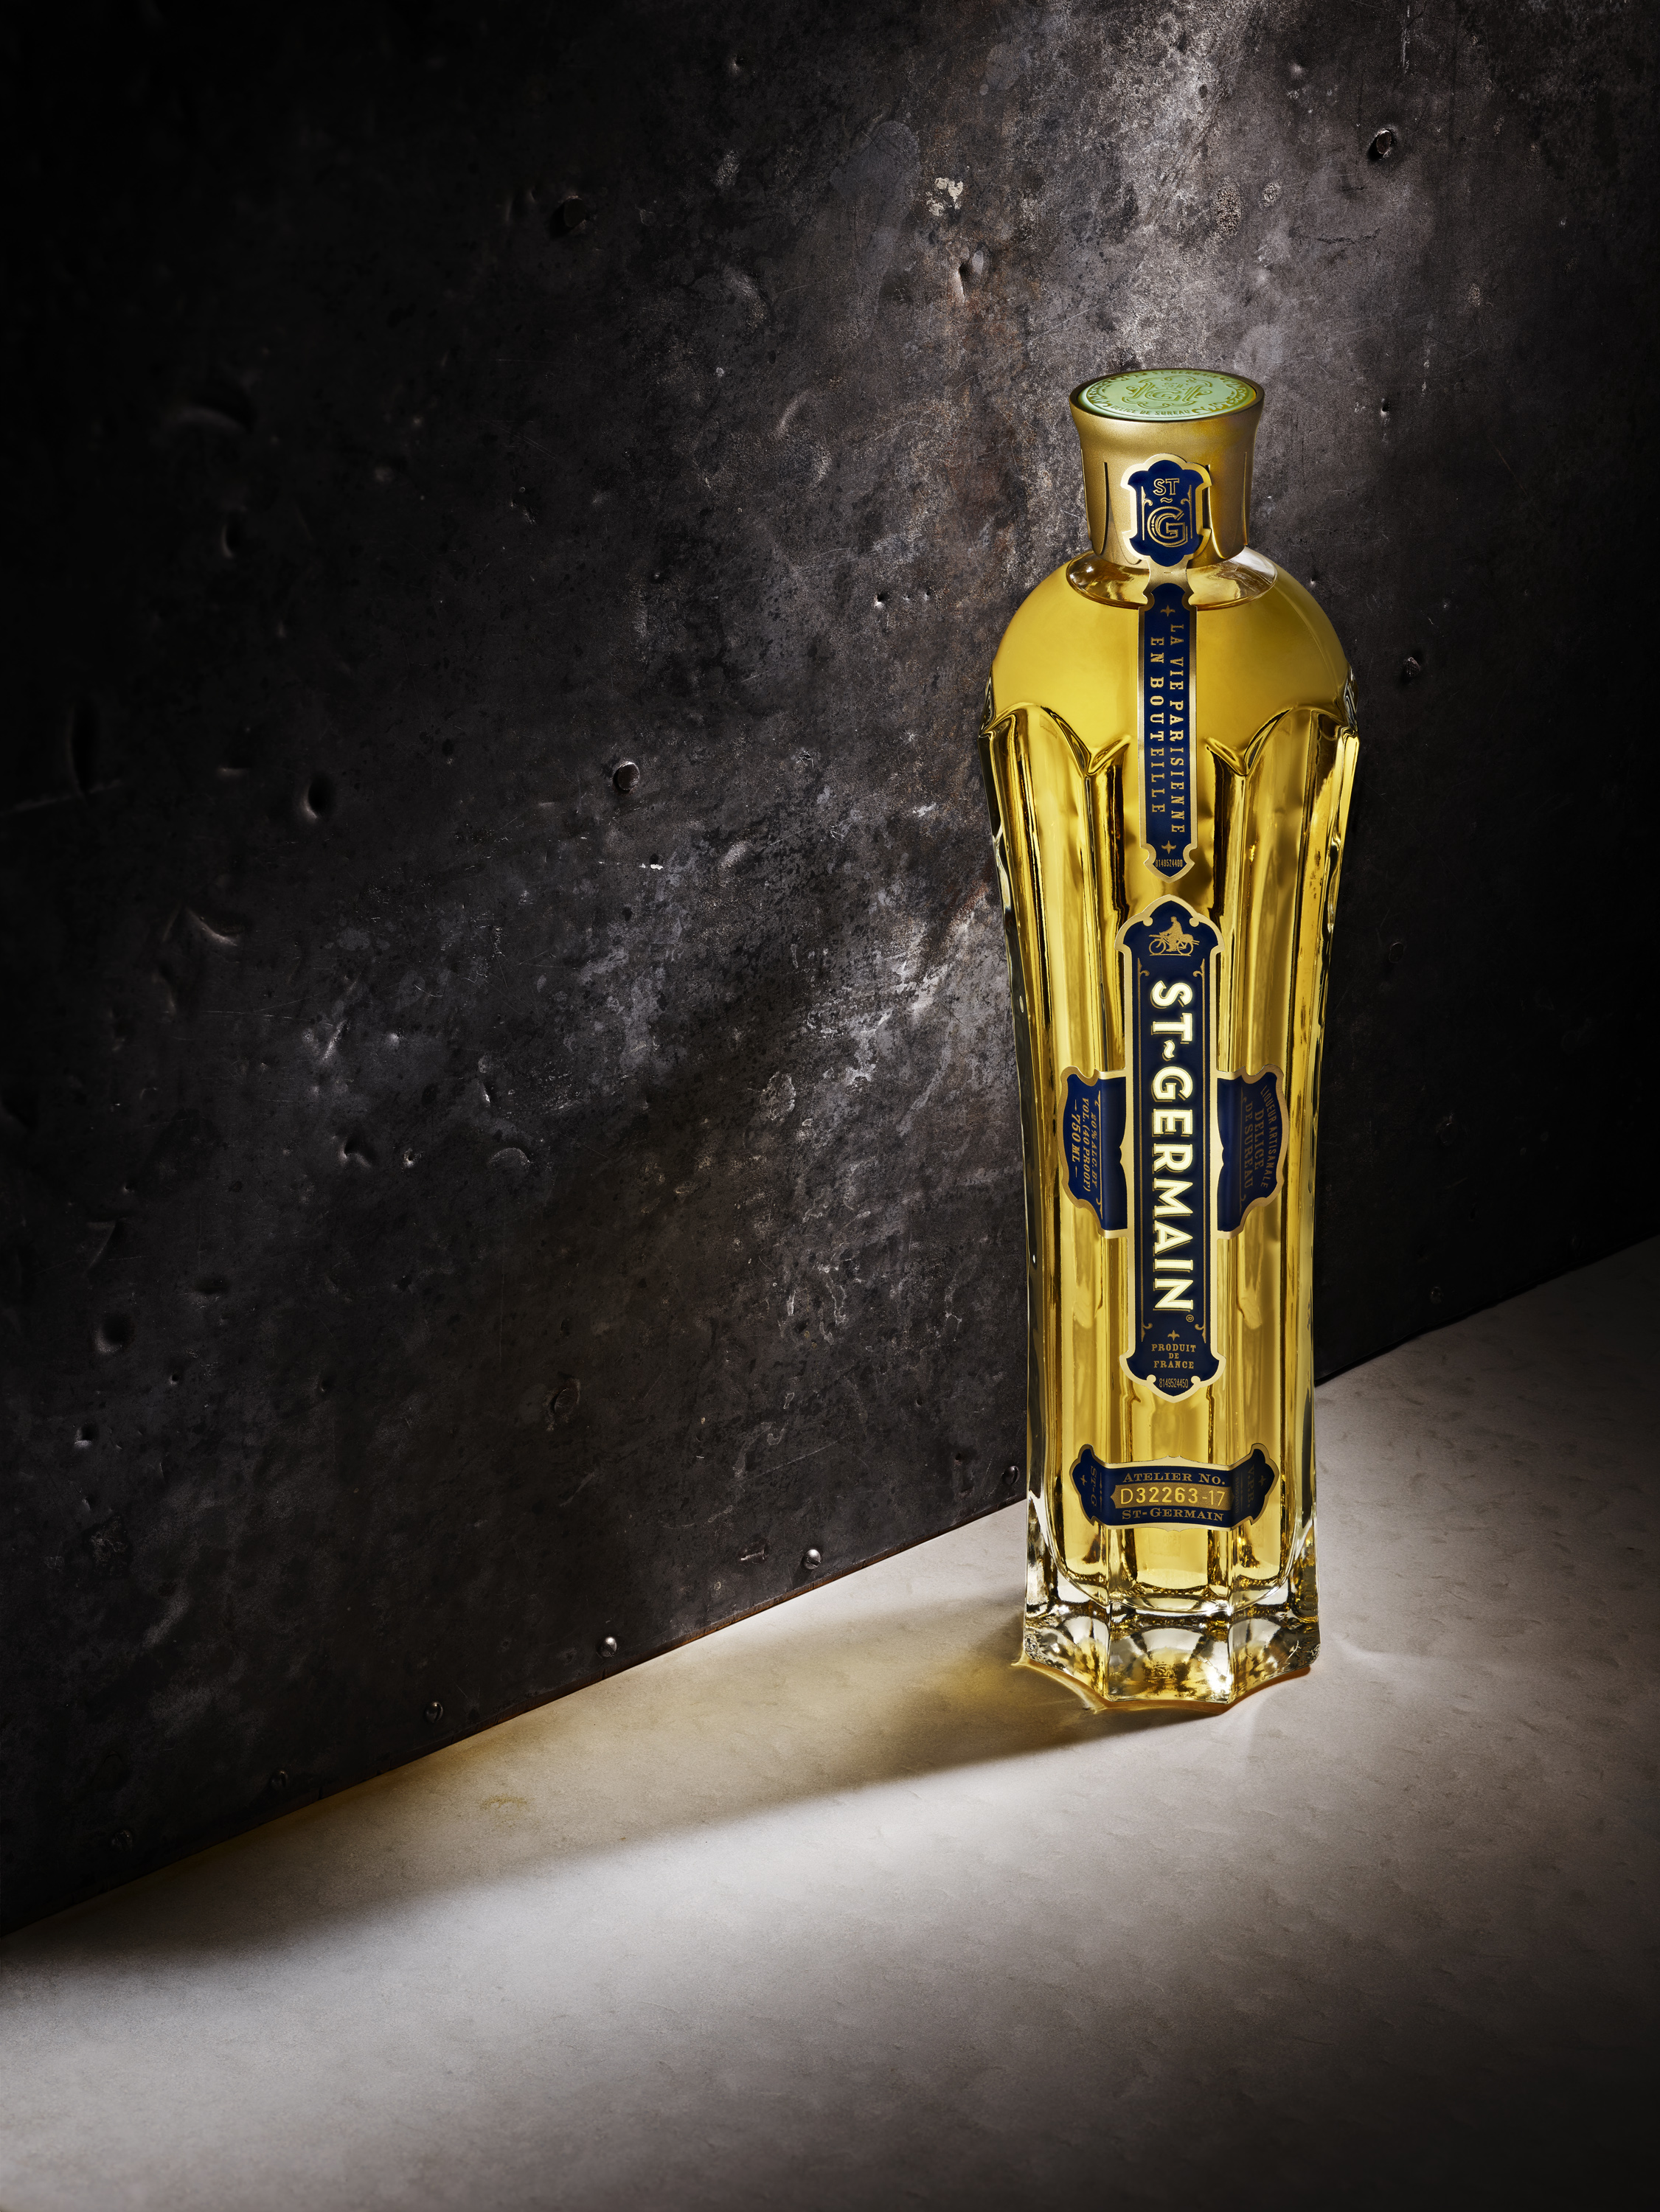 St_Germain_Bottle_w4